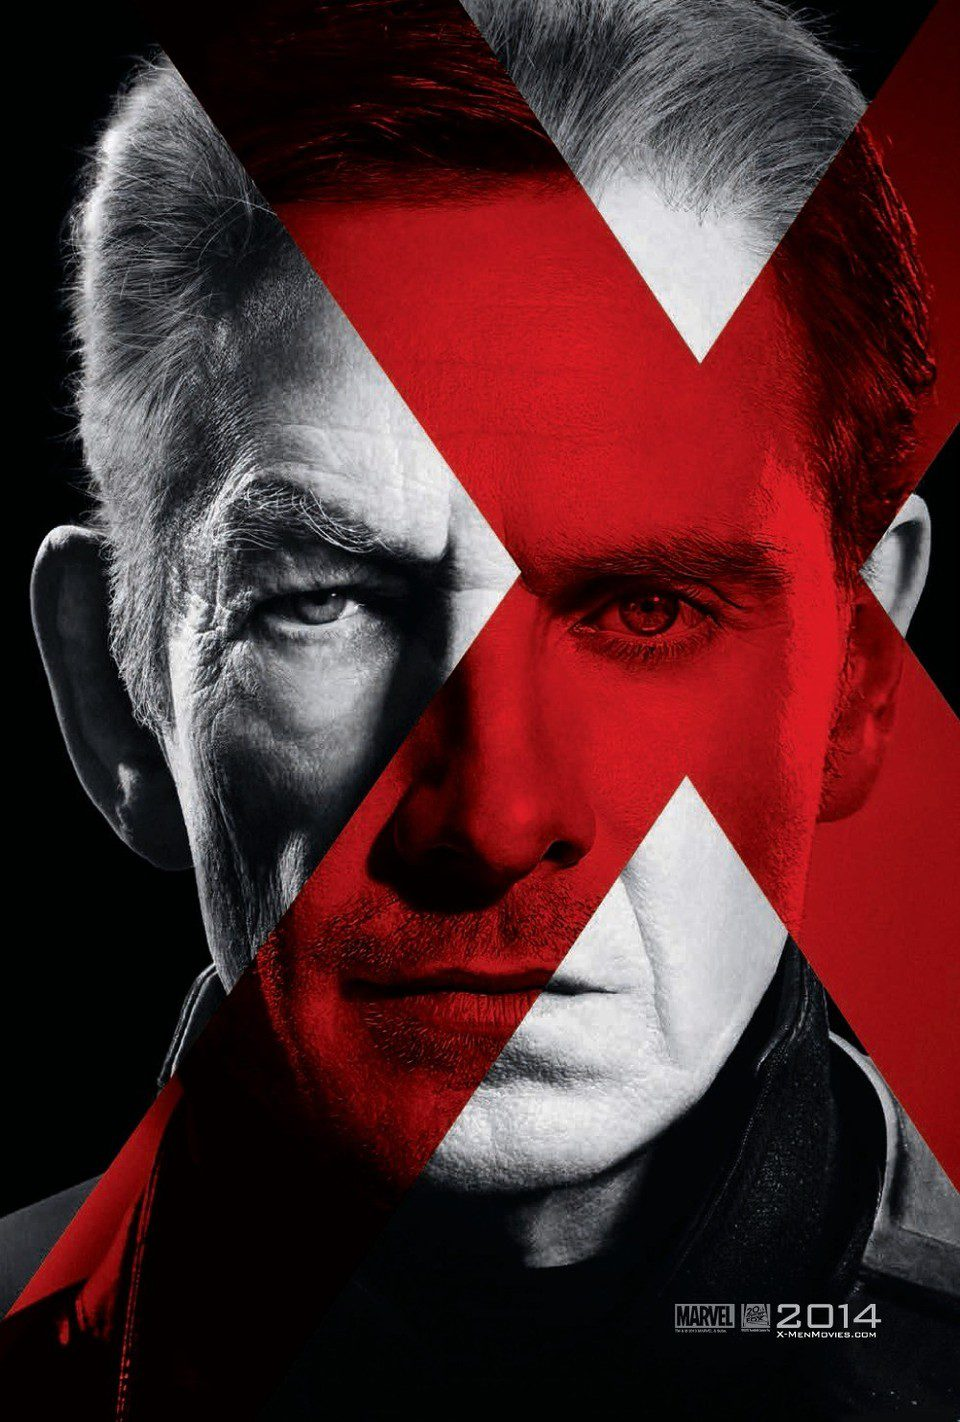 Magneto poster for X-Men: Days of Future Past